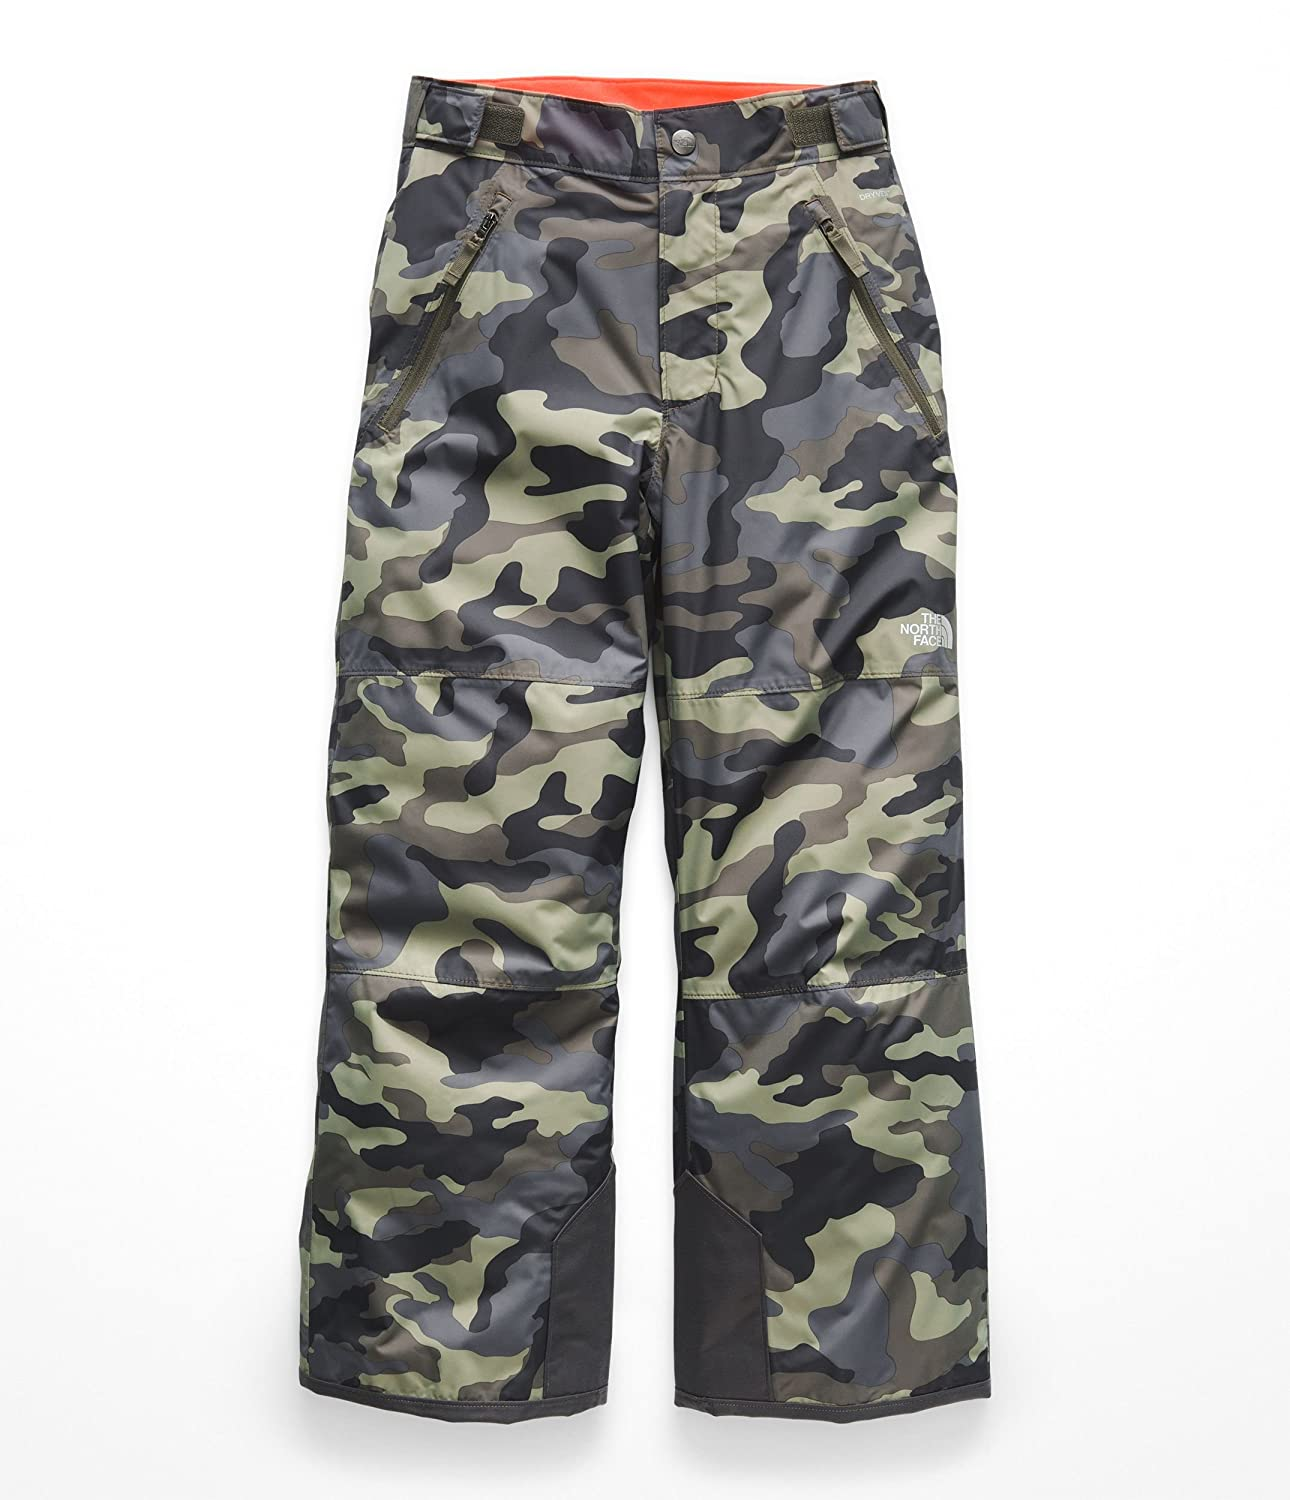 Little Kids//Big Kids The North Face Kids Boys Freedom Insulated Pants